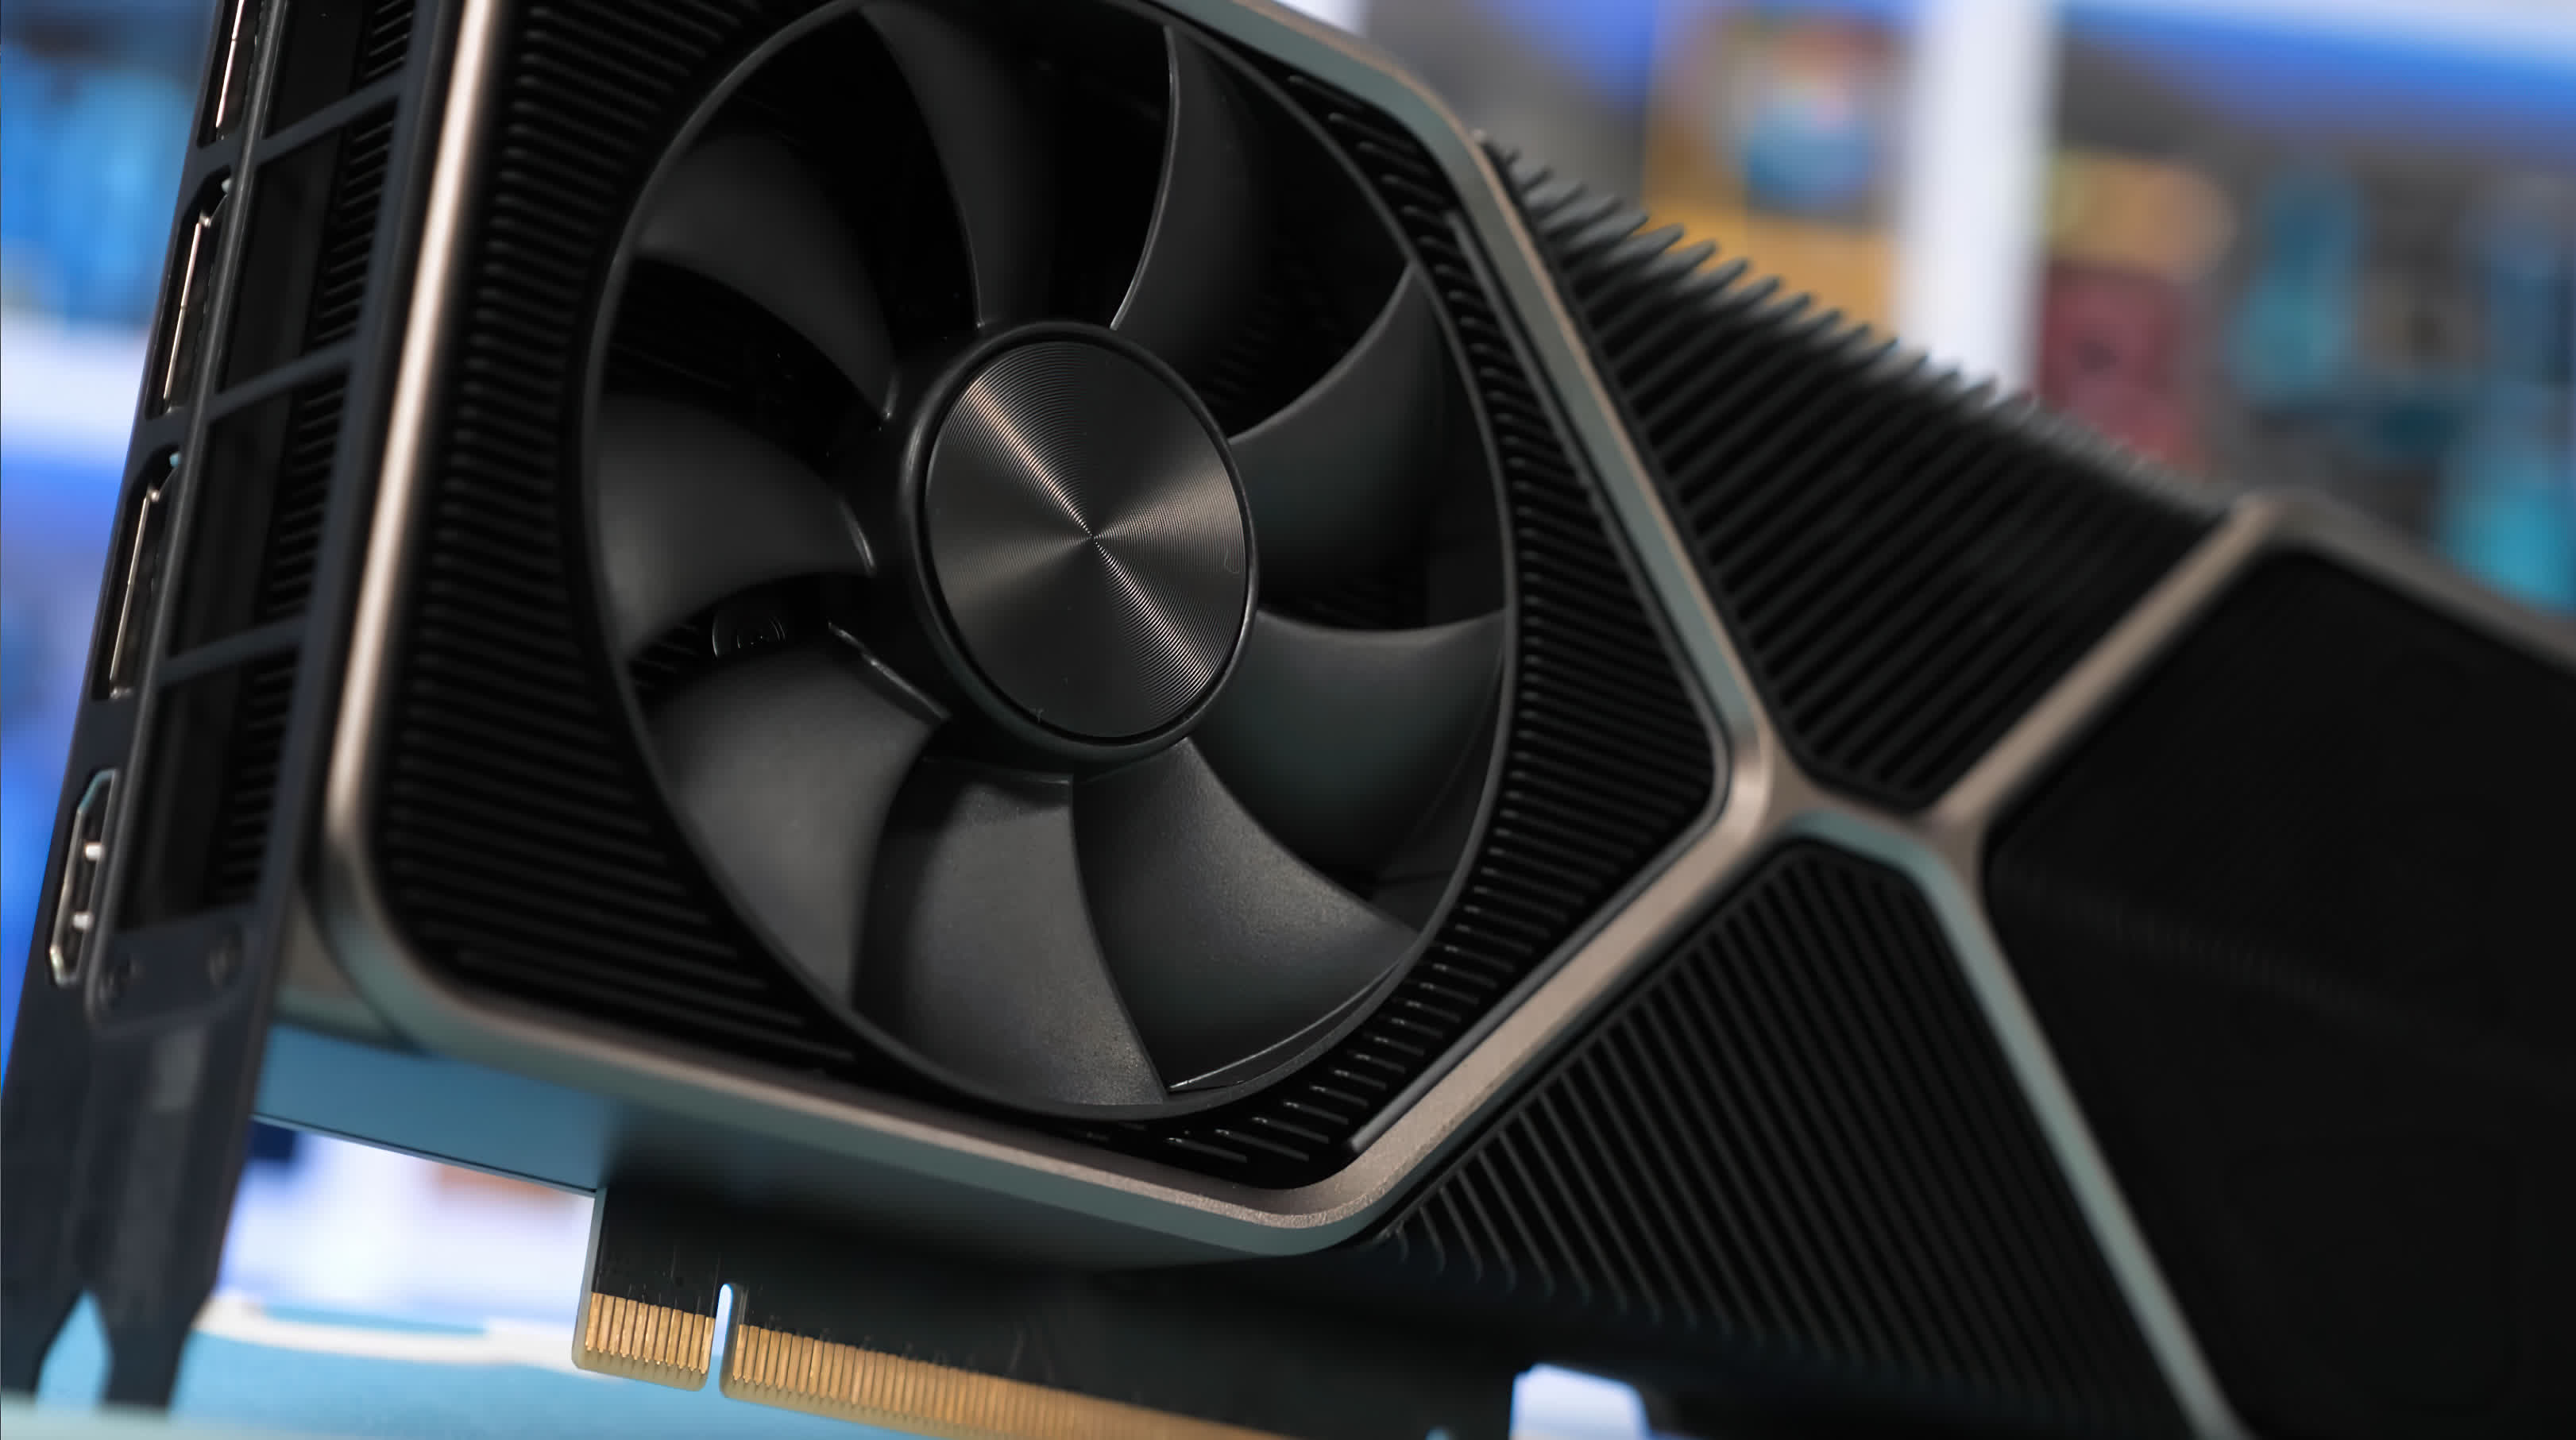 Nvidia RTX 3080 Ti almost certain to arrive in April, claims report